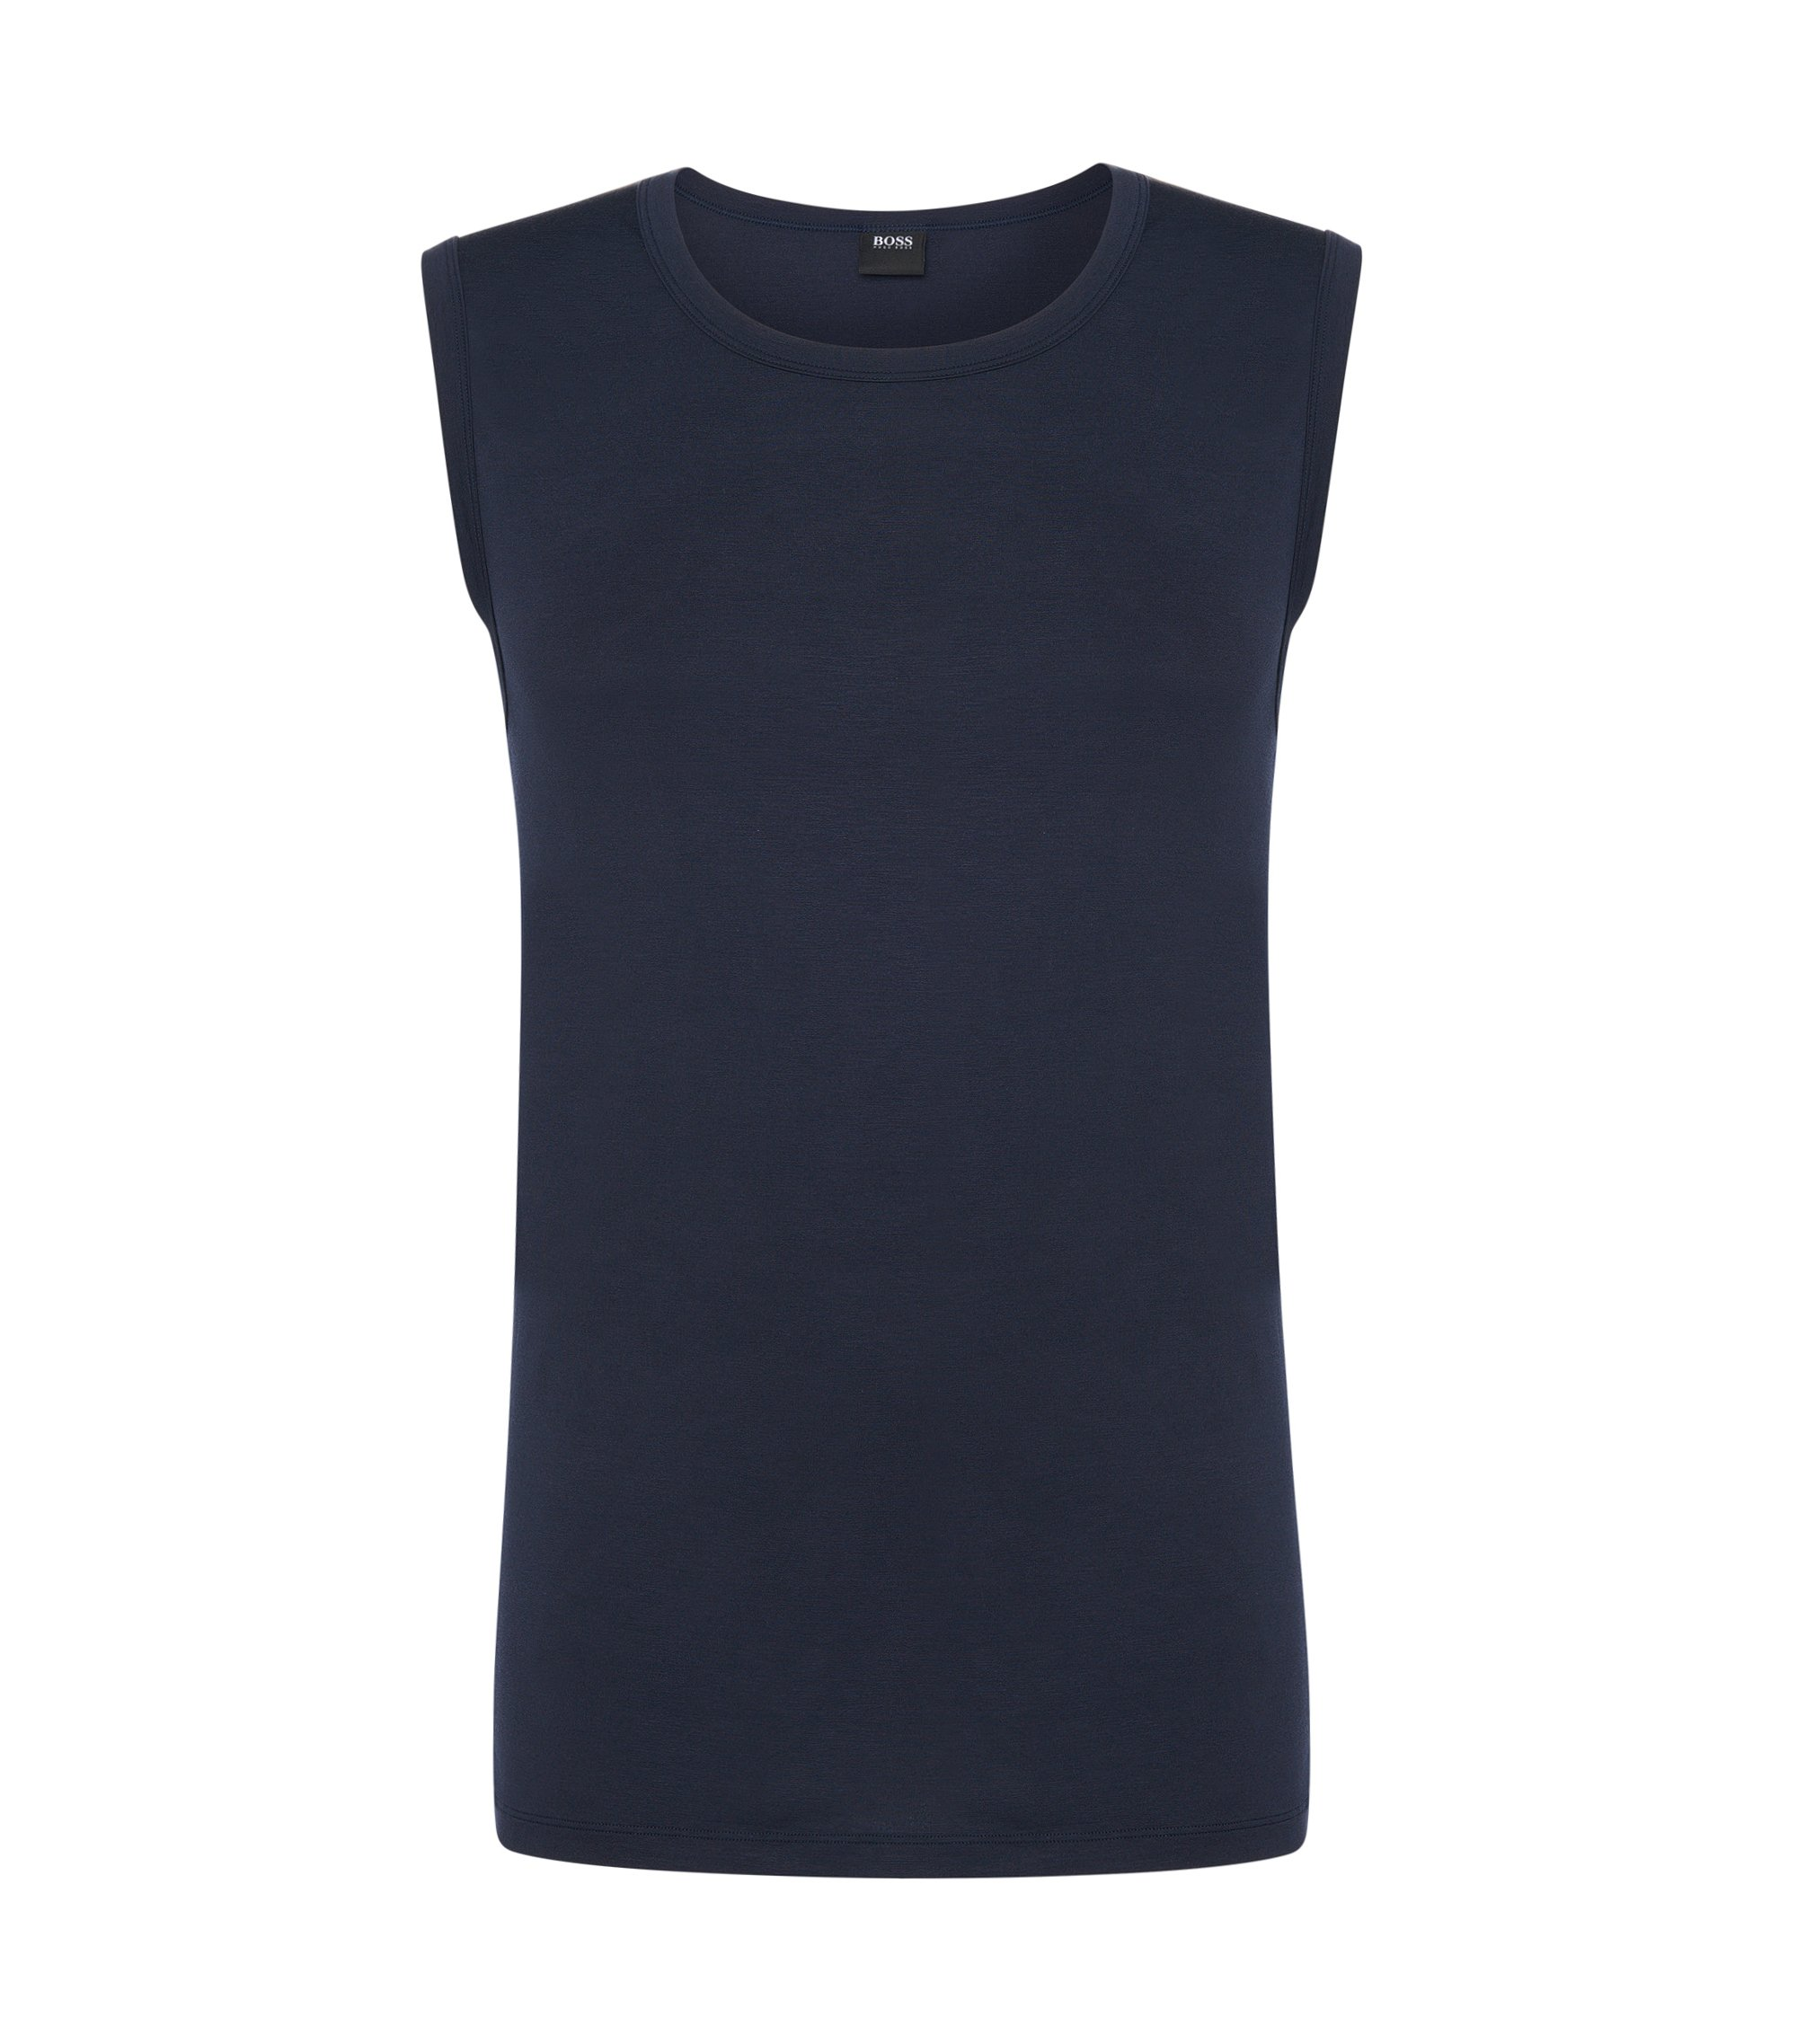 Stretch Modal Sleeveless T-Shirt | Shirt SL RN Seacell, Dark Blue